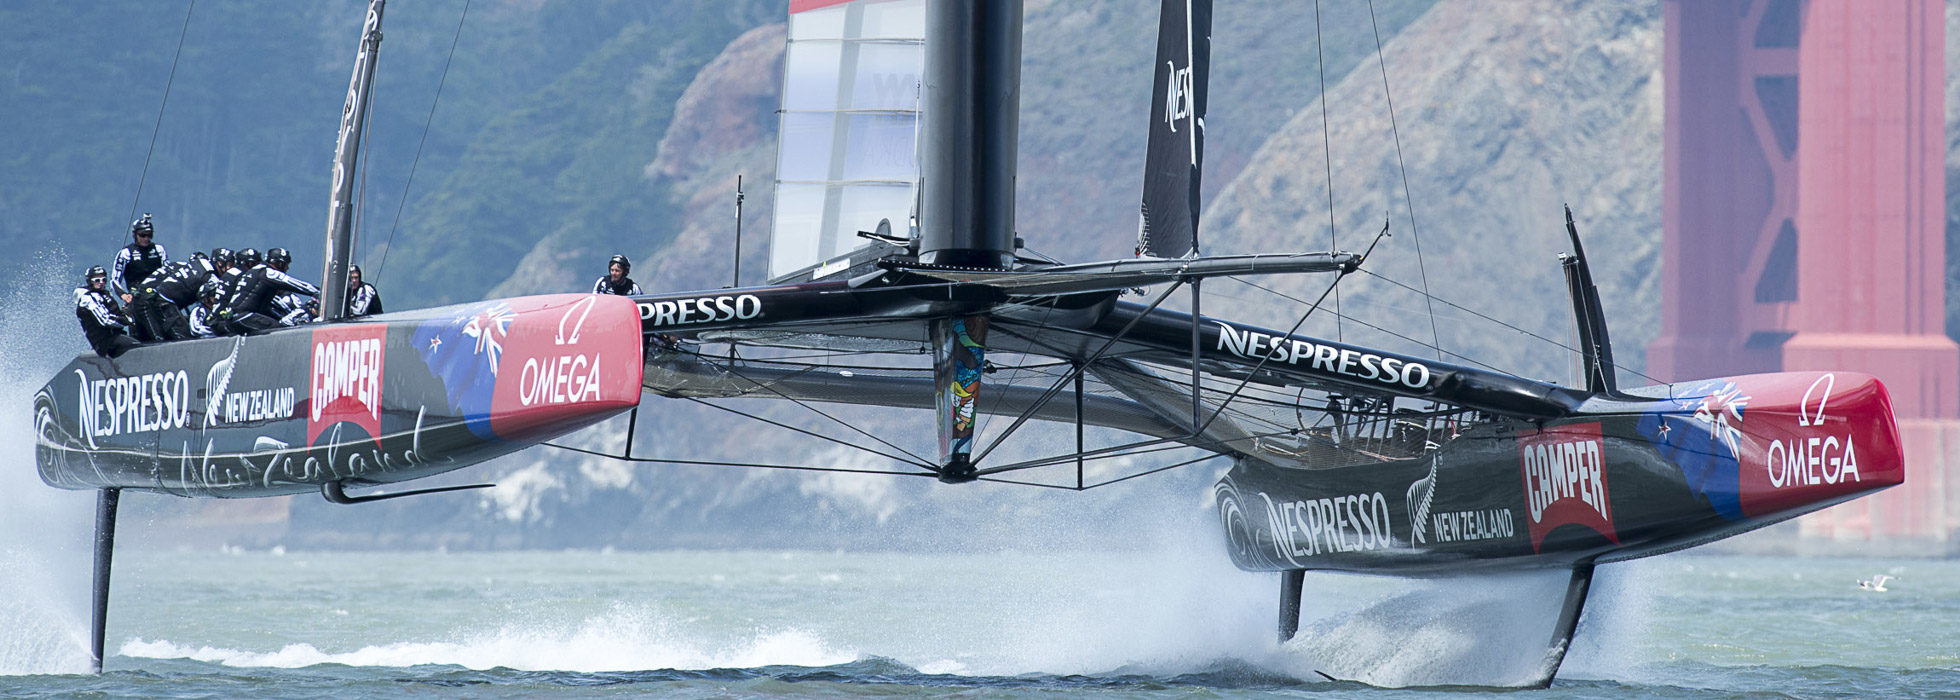 America's Cup - Emirates Team New Zealand